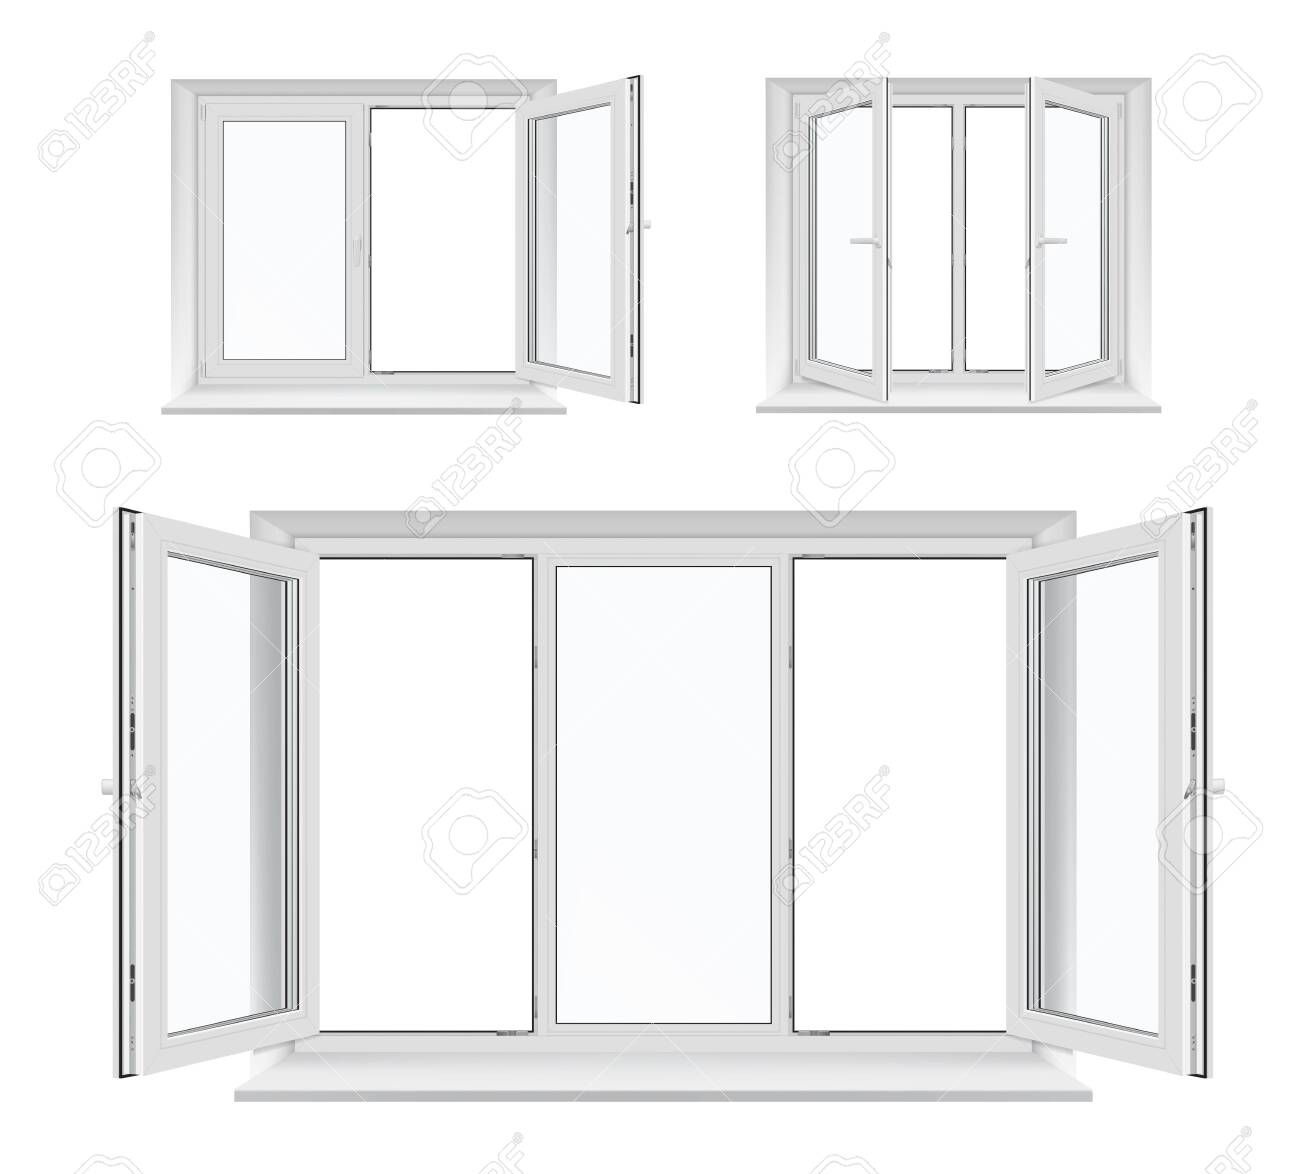 Windows with opened casements, vector white plastic frames, sills and glass panes, architecture and interior design. Realistic 3d windows with PVC, metal or aluminum profiles, locking handles - 137776078